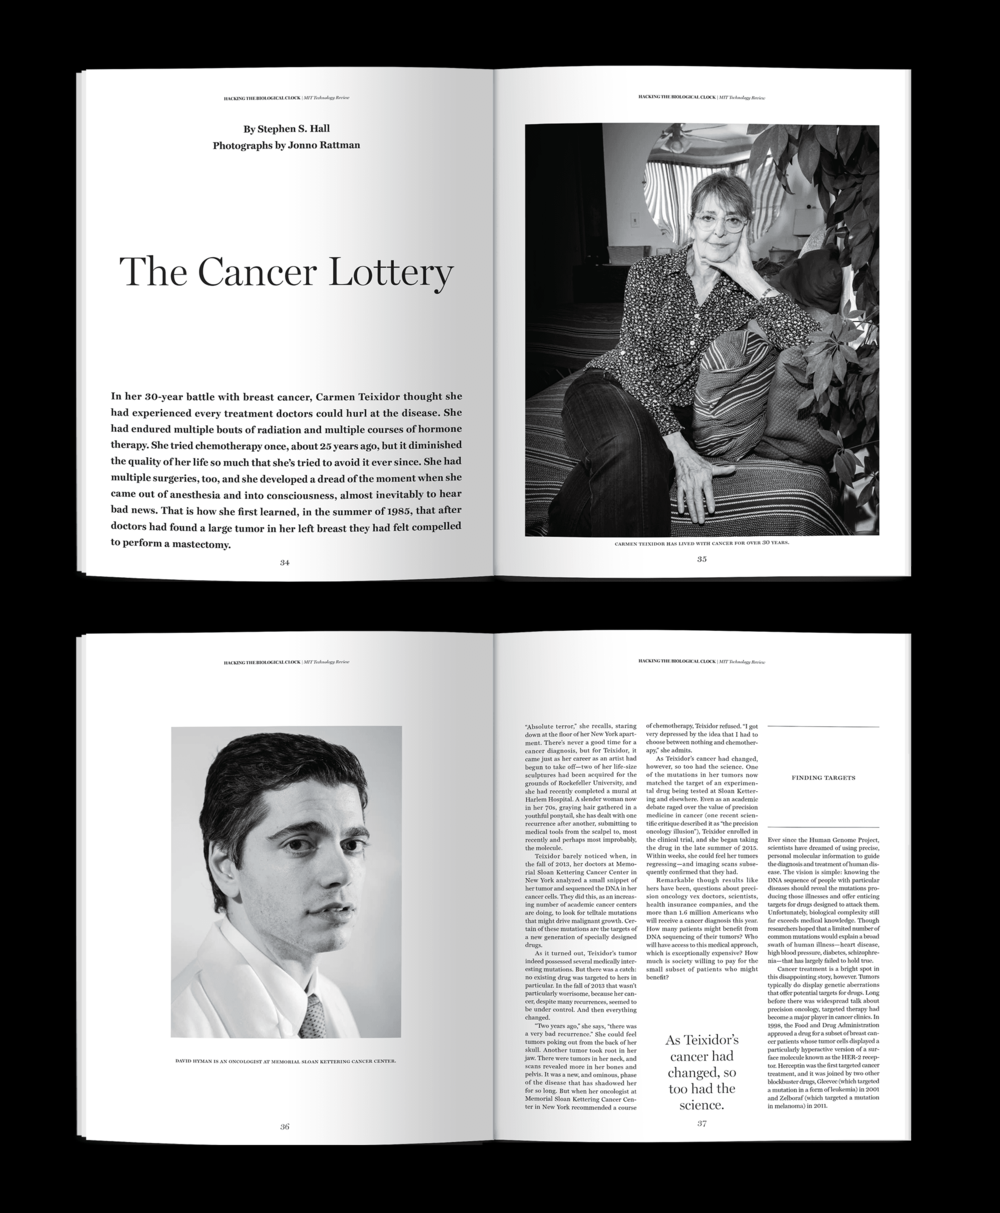 The Cancer Lottery